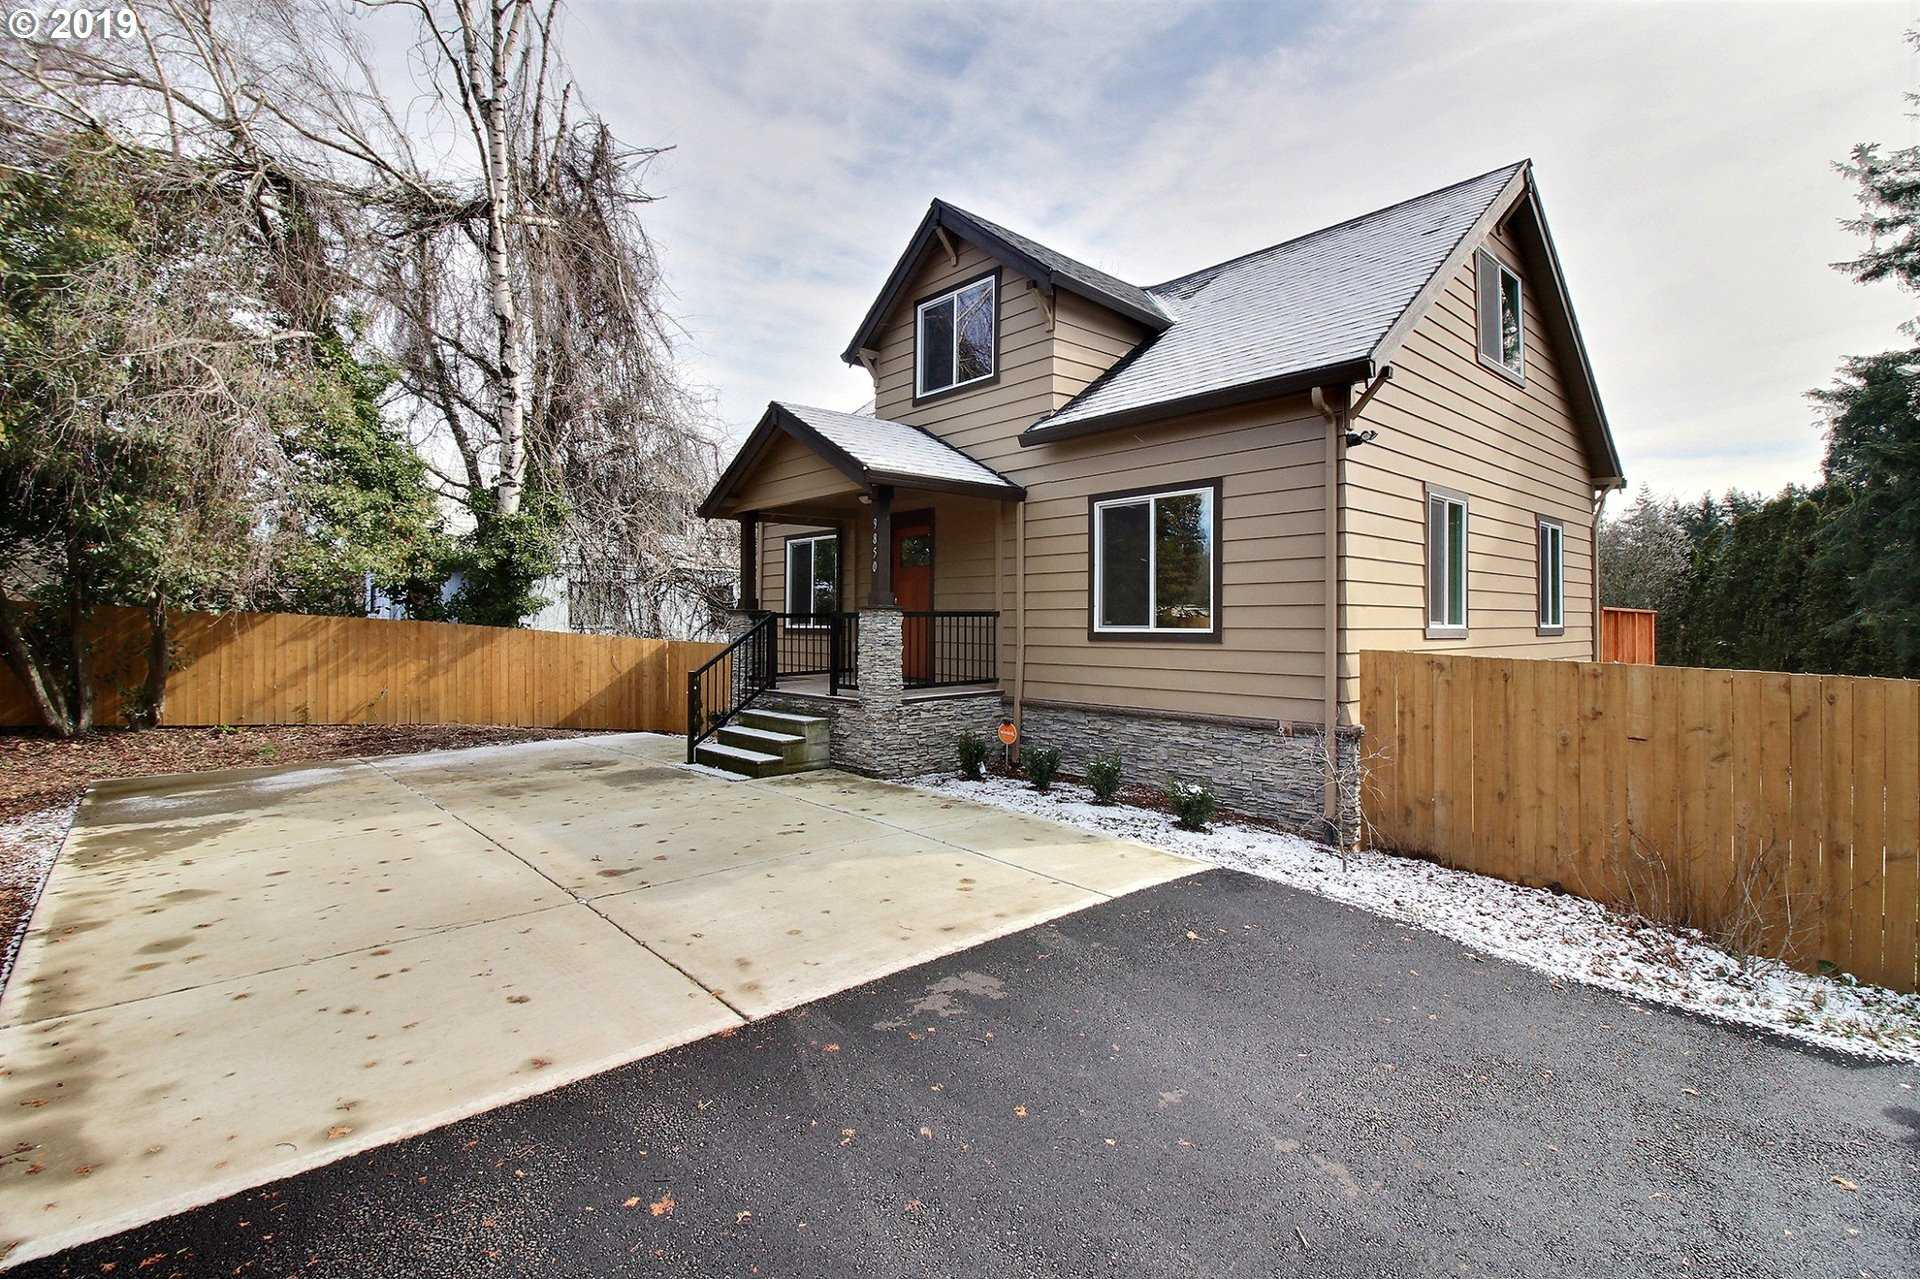 $519,000 - 5Br/3Ba -  for Sale in Portland